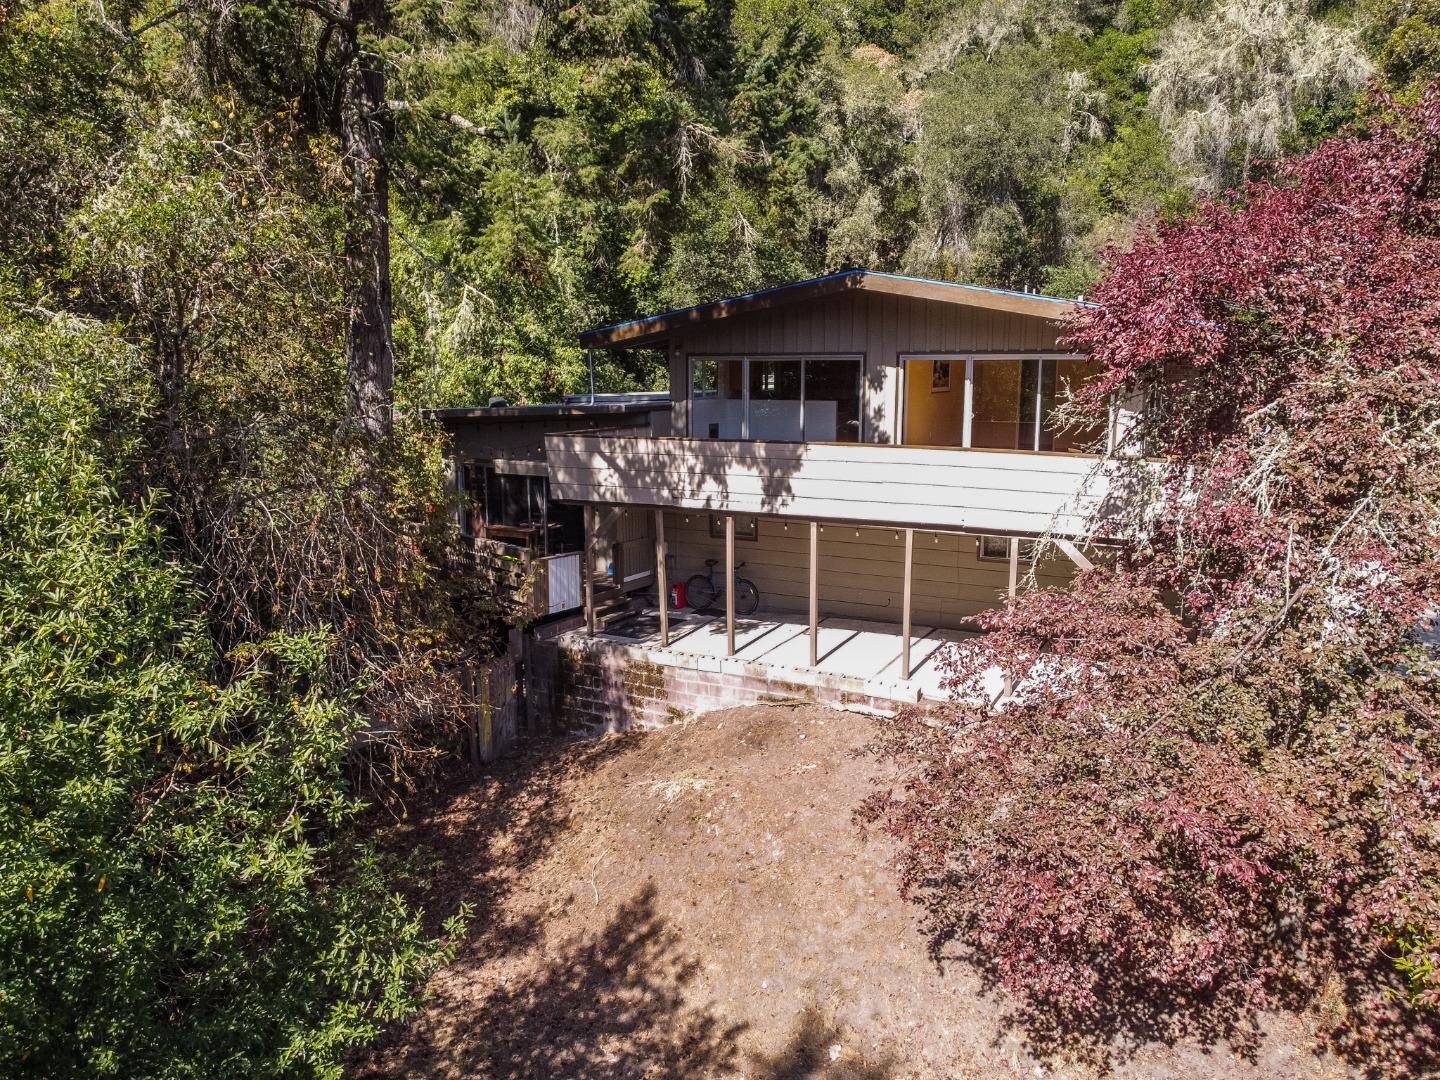 Escape to this peaceful home on over 9 sunny acres yet close to Santa Cruz and Hwy 17. Enjoy south east exposure with your morning coffee on the wraparound deck looking over the mature fir and oak trees. The main house has high ceilings with ample natural light, a large living area with fireplace, kitchen, and 4 bedrooms and 2 bathrooms down the hall. Downstairs is a large basement storage area with a second wash/dryer hook up. Plenty of sunny areas to garden and enjoy nature plus many acres for exploration and privacy. Agricultural zoning allows for many uses. Includes a paved driveway, carport and extra parking area. Minutes from DeLaveaga Park and downtown. Happy Valley schools!